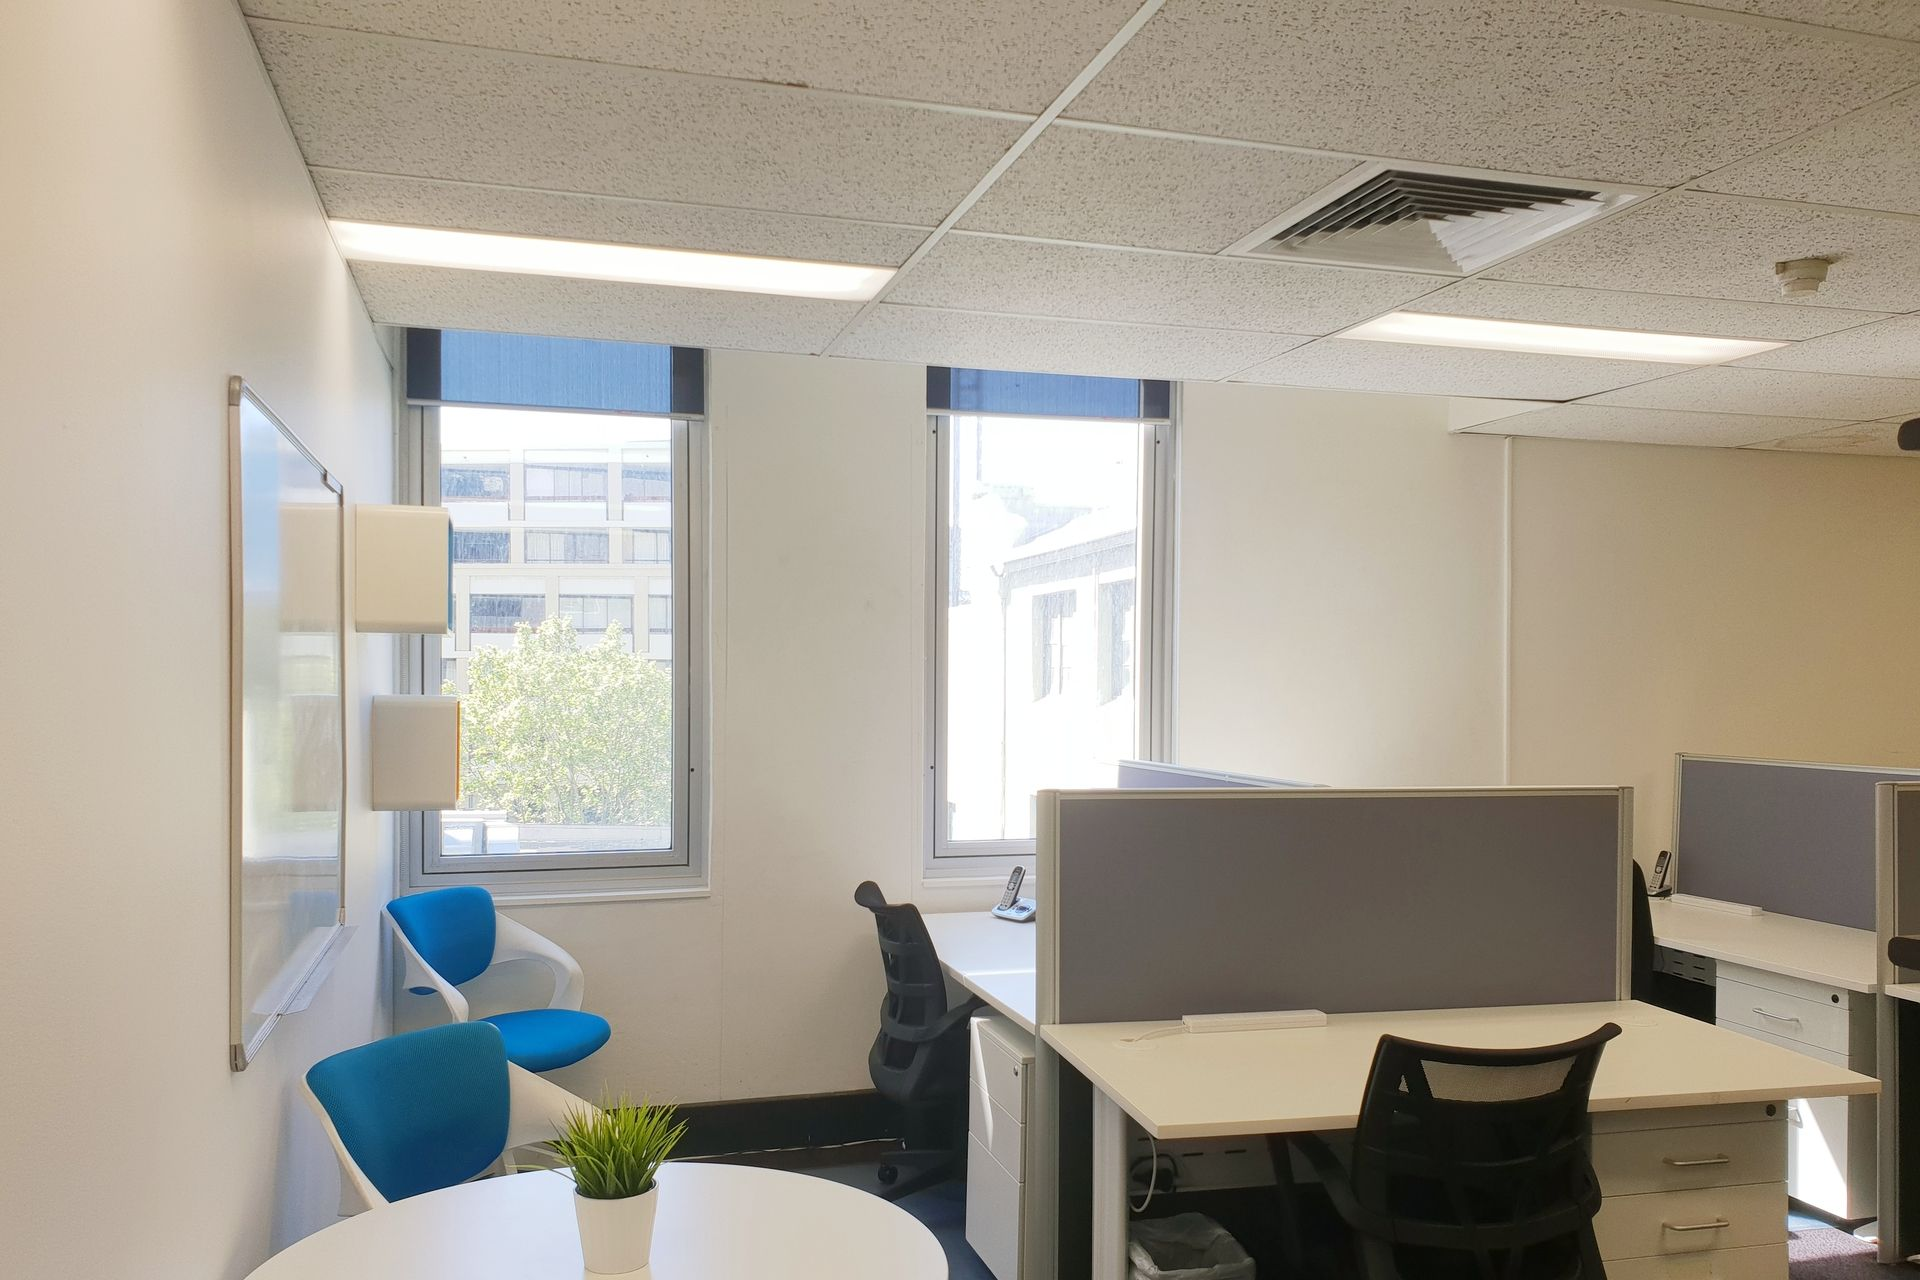 FULLY FURNISHED 7 BRIGHT OFFICE WITH 6 WORKSTATIONS - SURRY HILLS, CENTRAL STATION